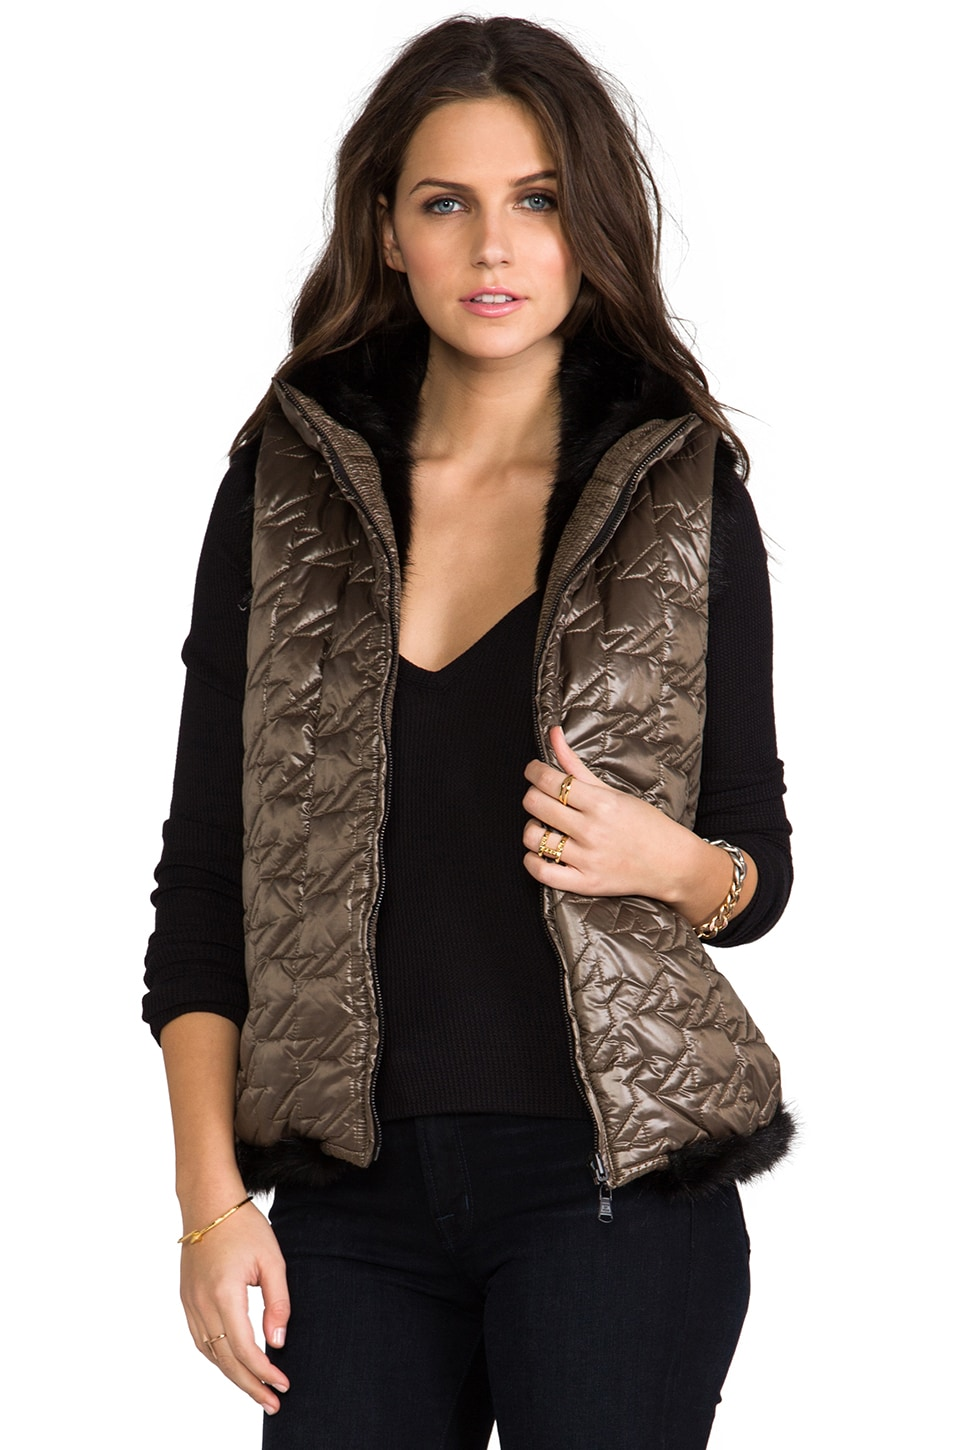 Marc by Marc Jacobs Logan Reversible Faux Fur Puffer Vest in Dirty Martini